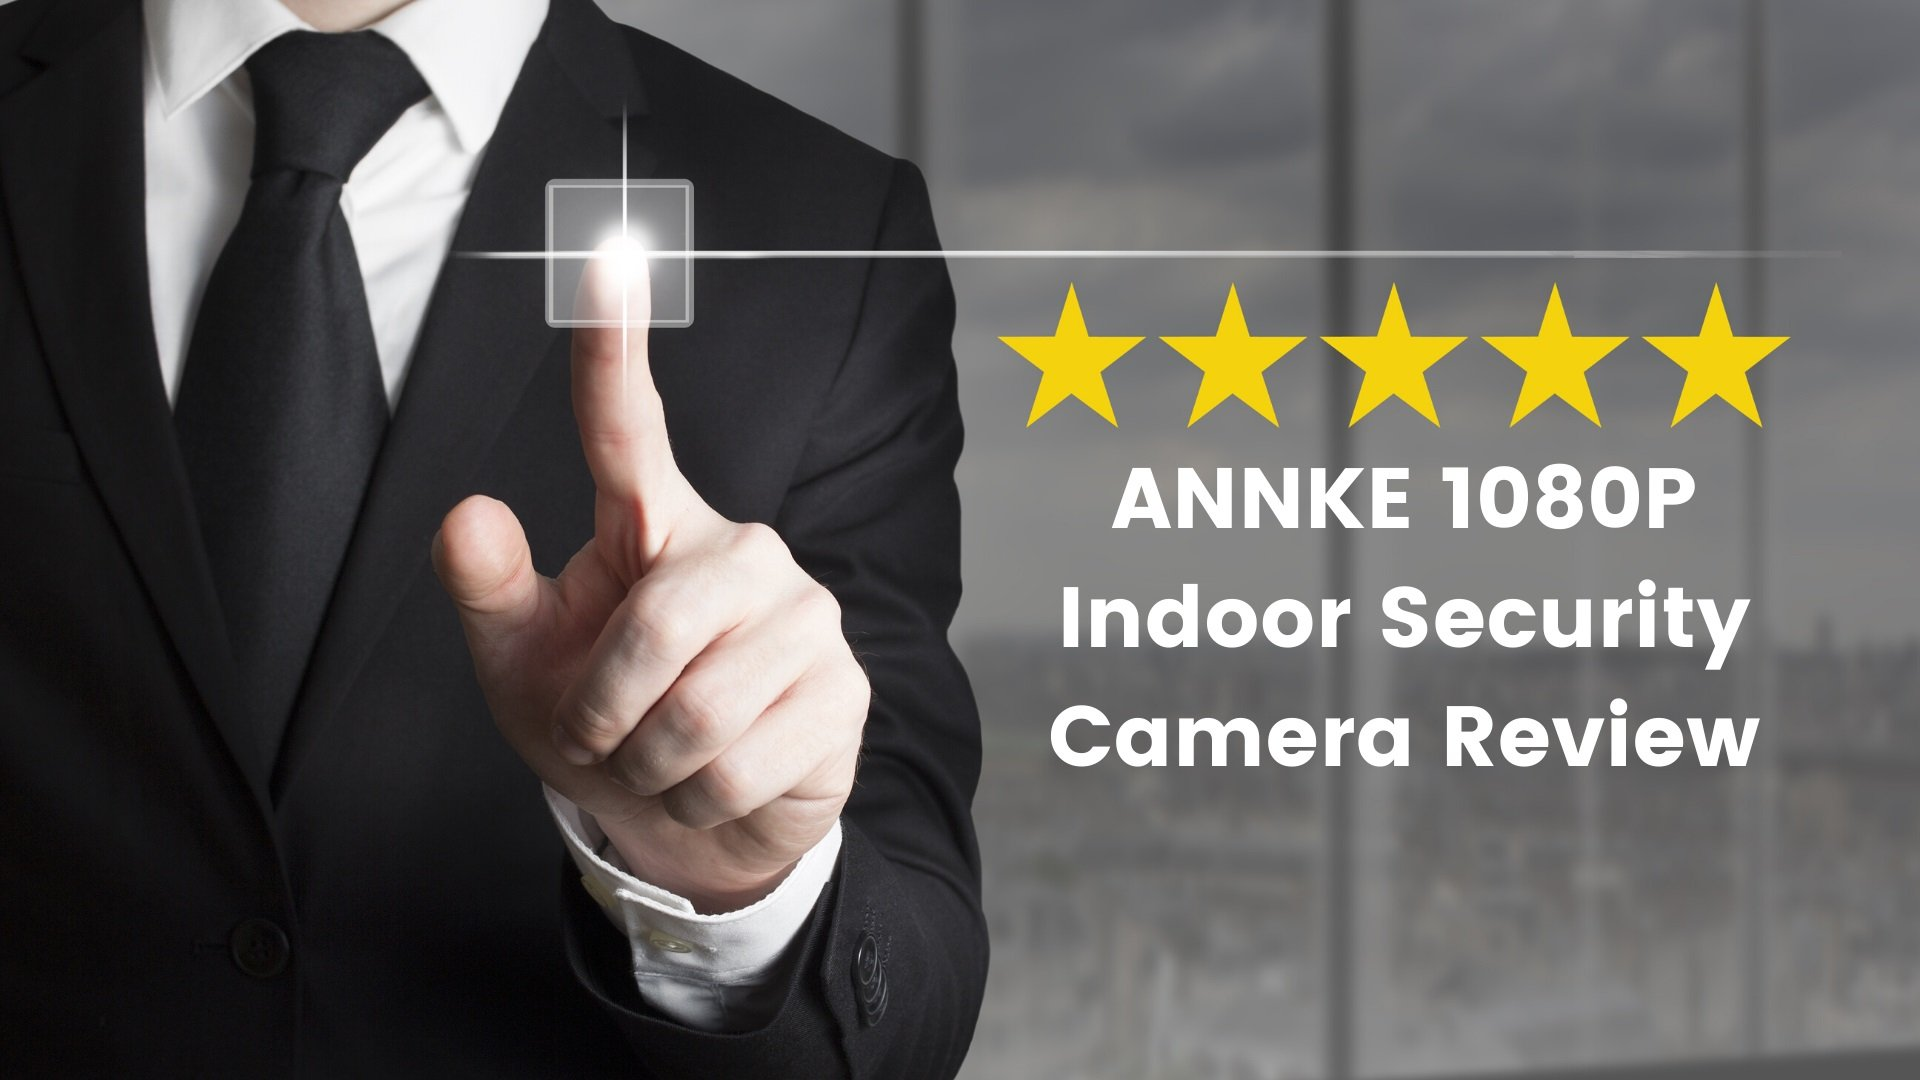 ANNKE 1080P Indoor Security Camera Review